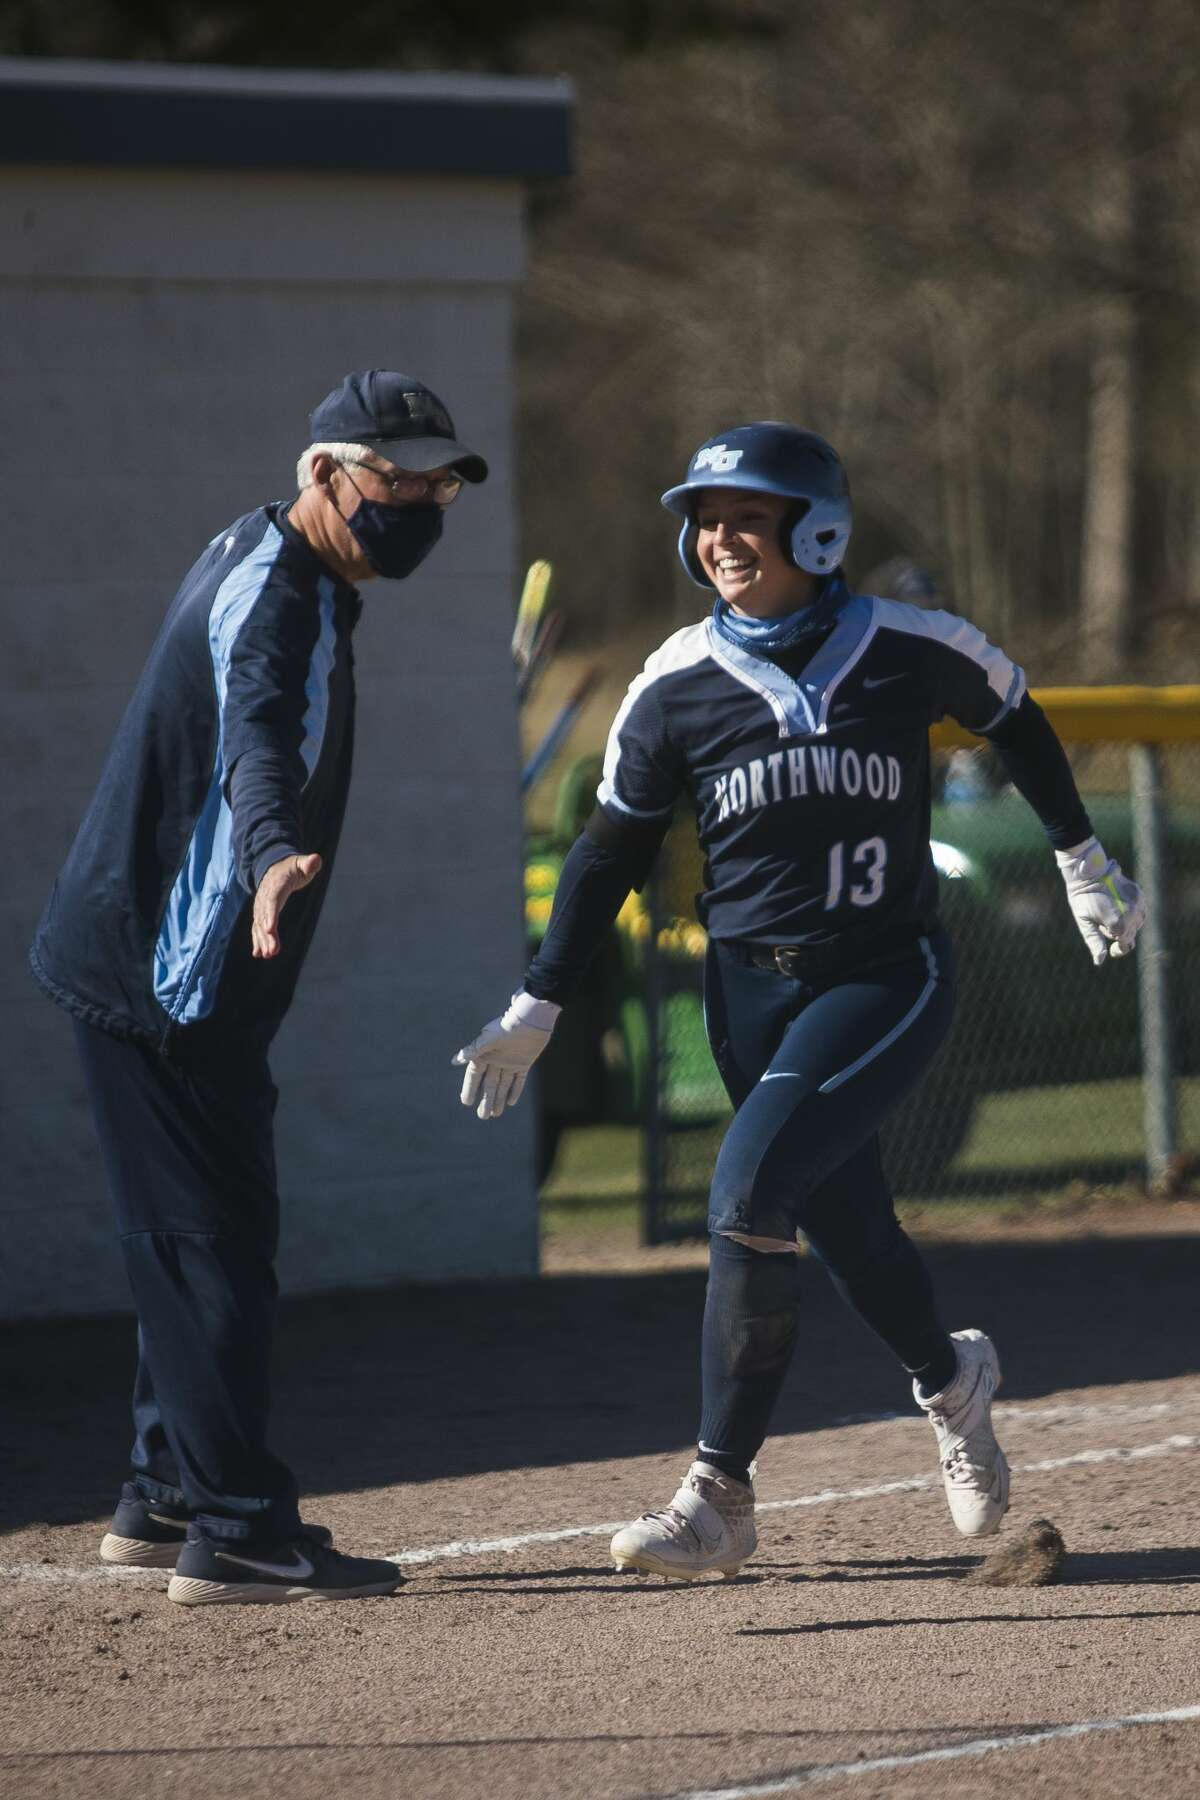 Northwood's Maddie Coulter jogs towards home base after hitting a home run during the Timberwolves' doubleheader against Wayne State Friday, April 2, 2021 at Northwood University. (Katy Kildee/kkildee@mdn.net)